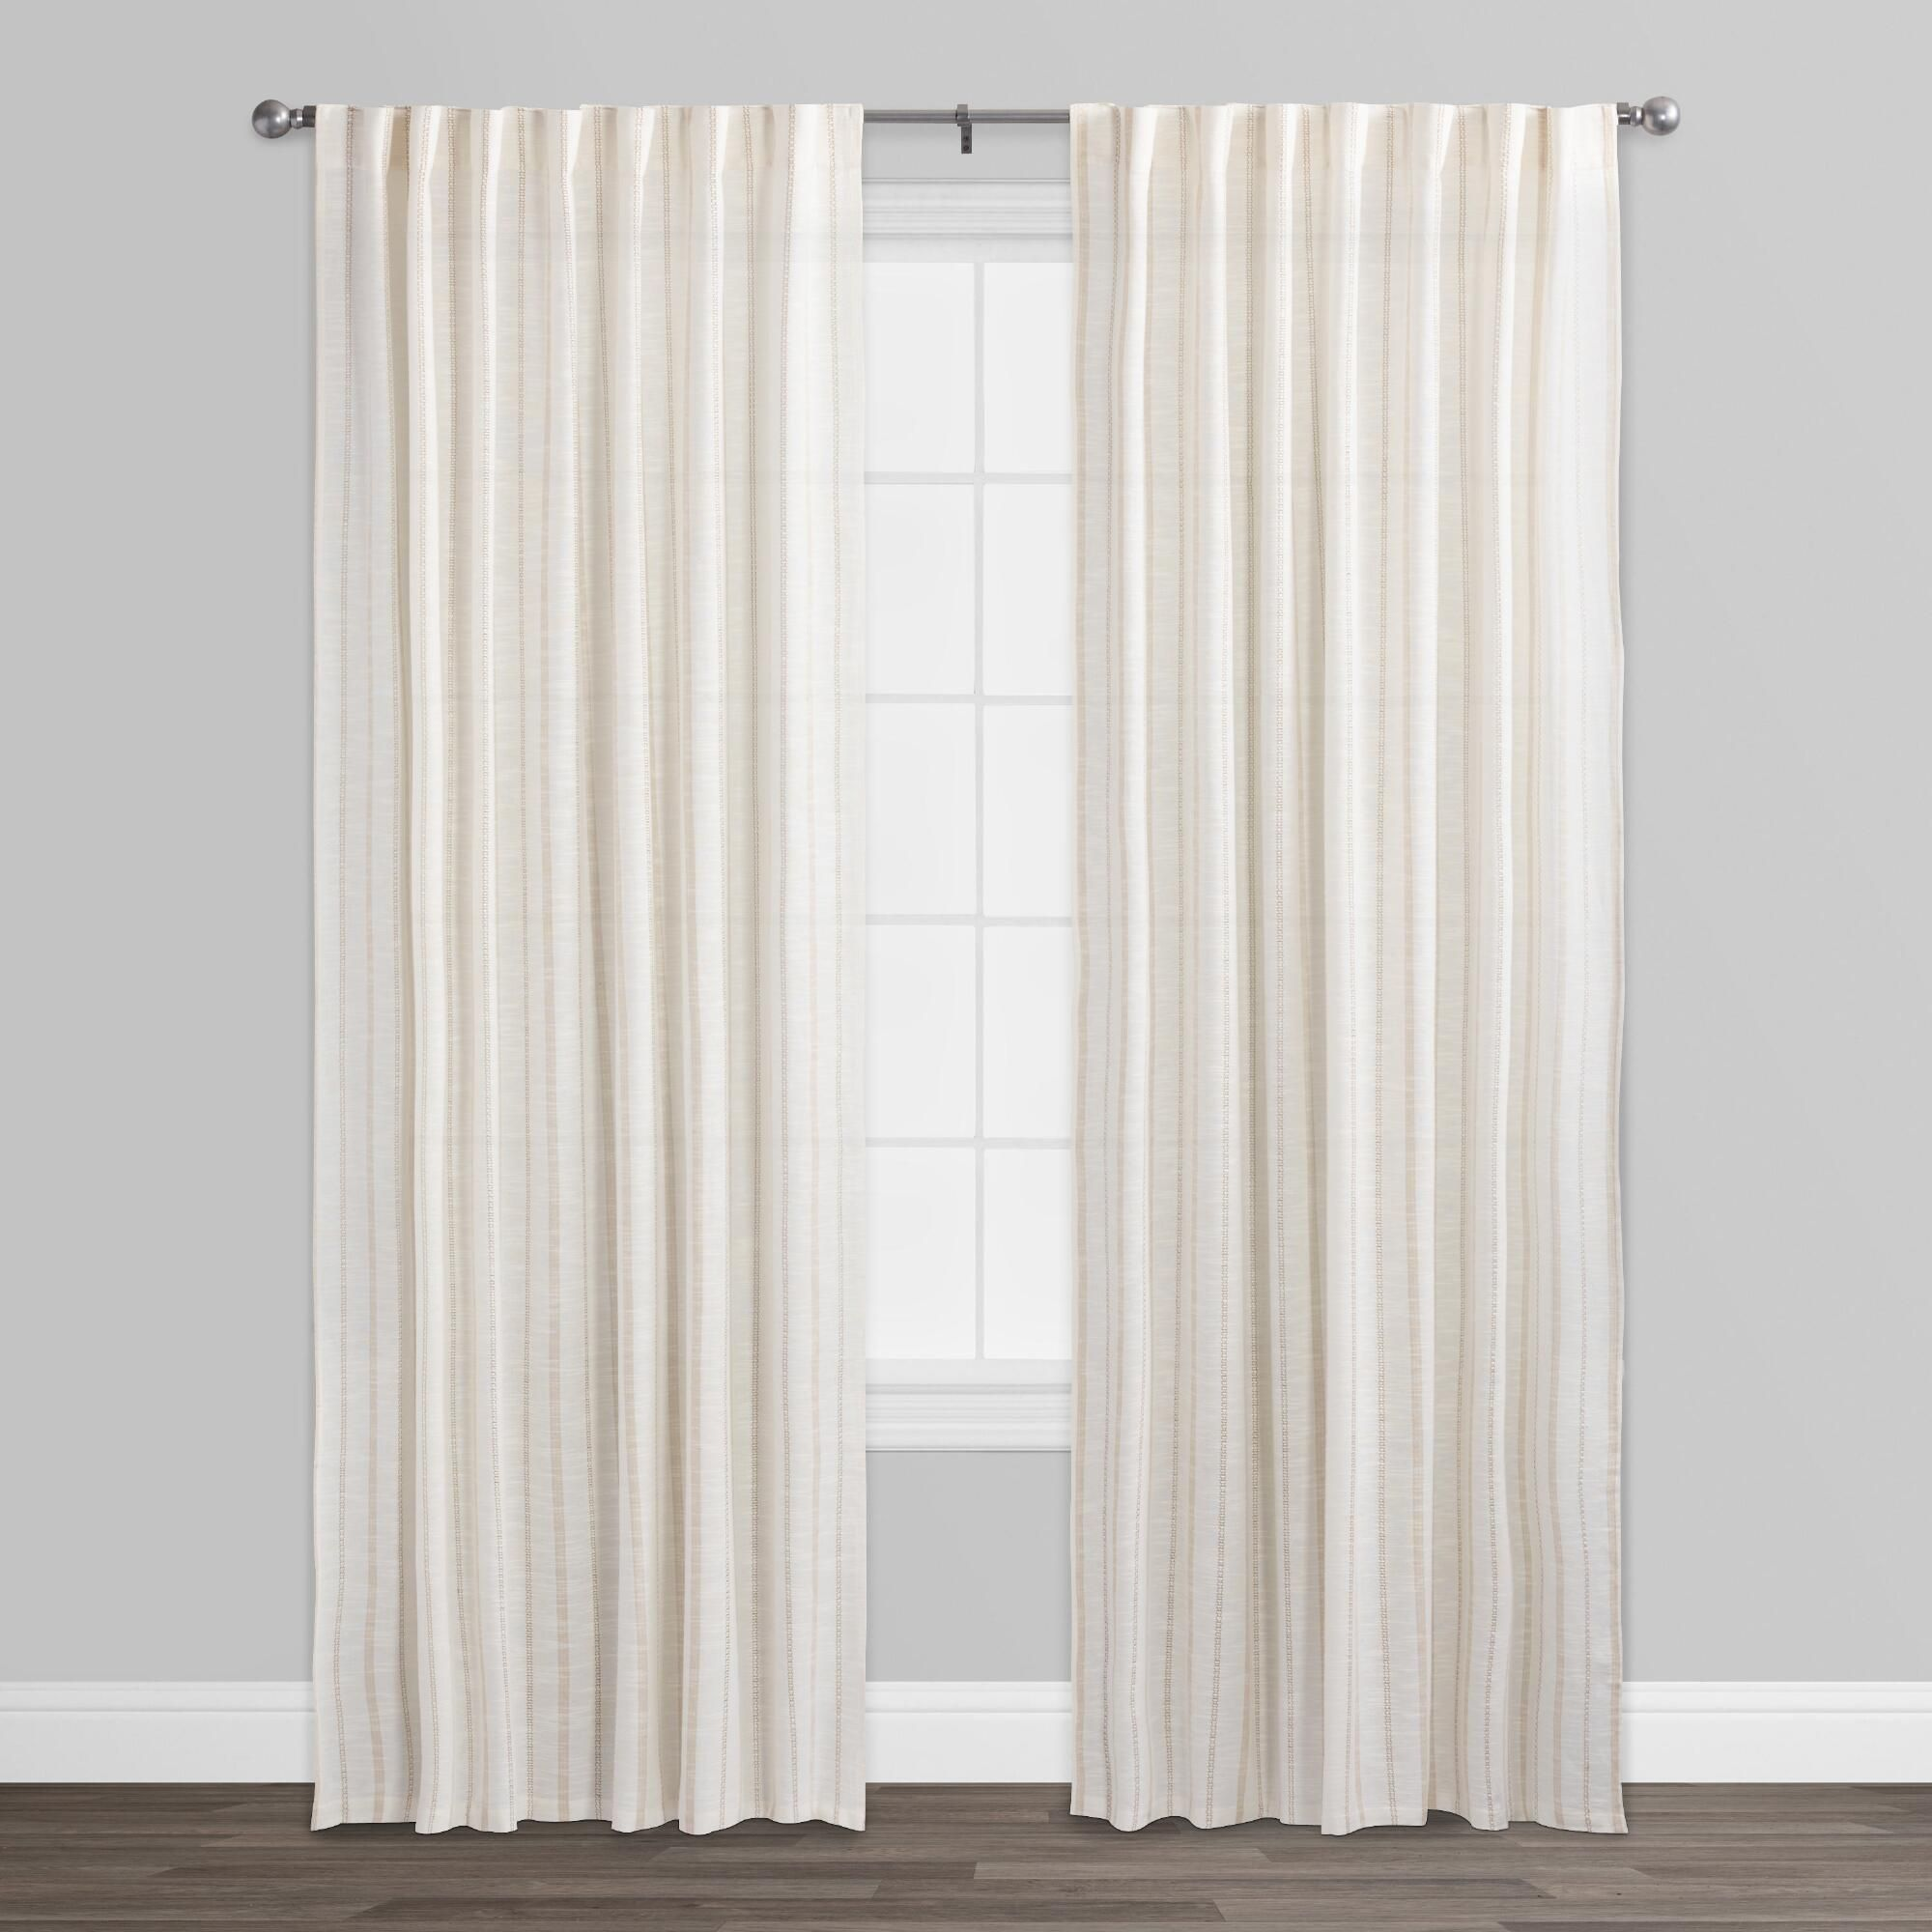 The Dobby Striping In Our Cotton Slub Curtains Weaves Ivory Under